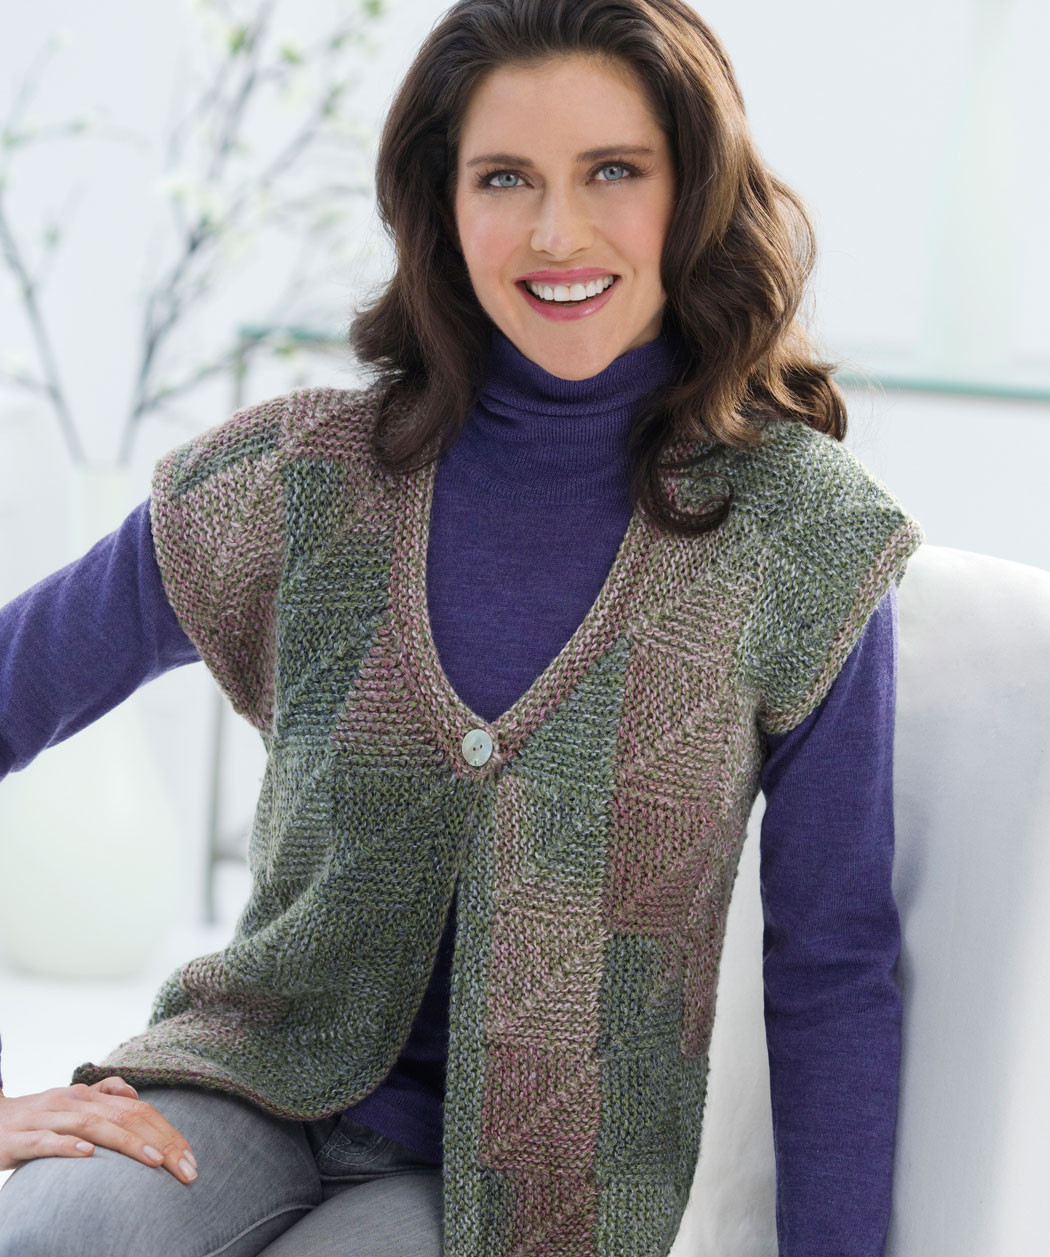 Lovely Knitted Vest Patterns Women's Knitted Vest Patterns Of Amazing 48 Ideas Women's Knitted Vest Patterns